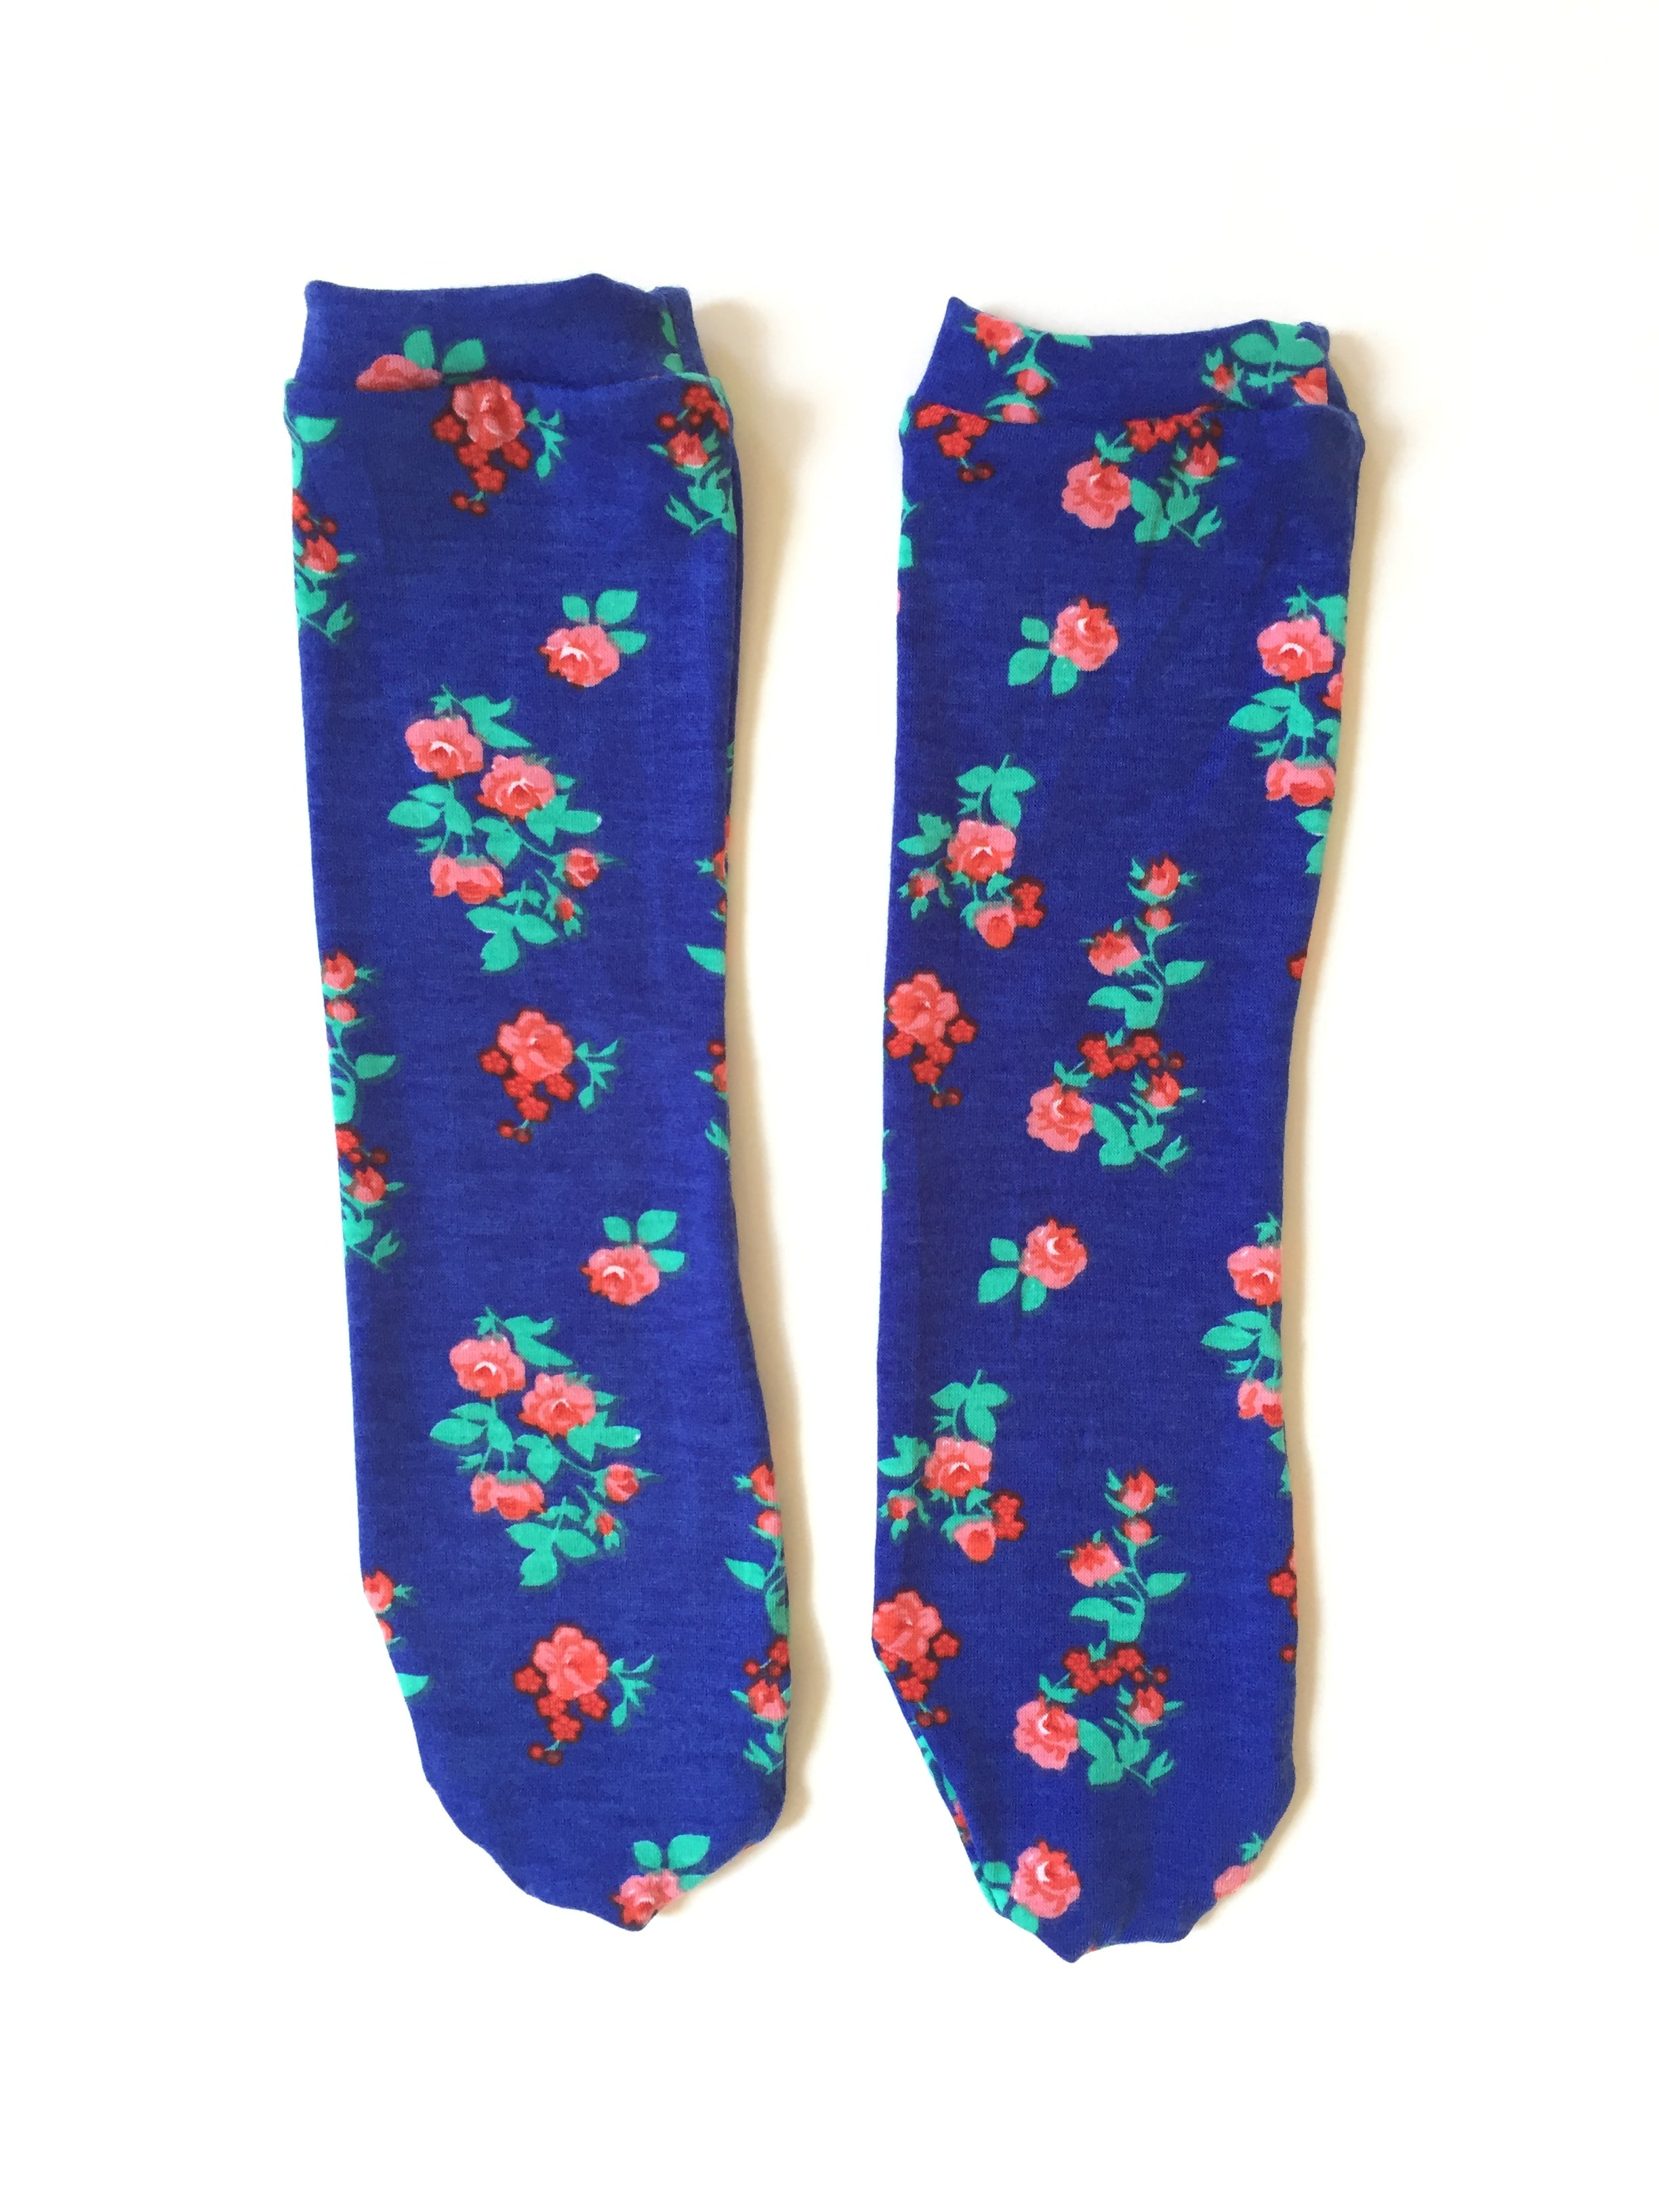 PRETTY BLUE ROSES Knee High Socks